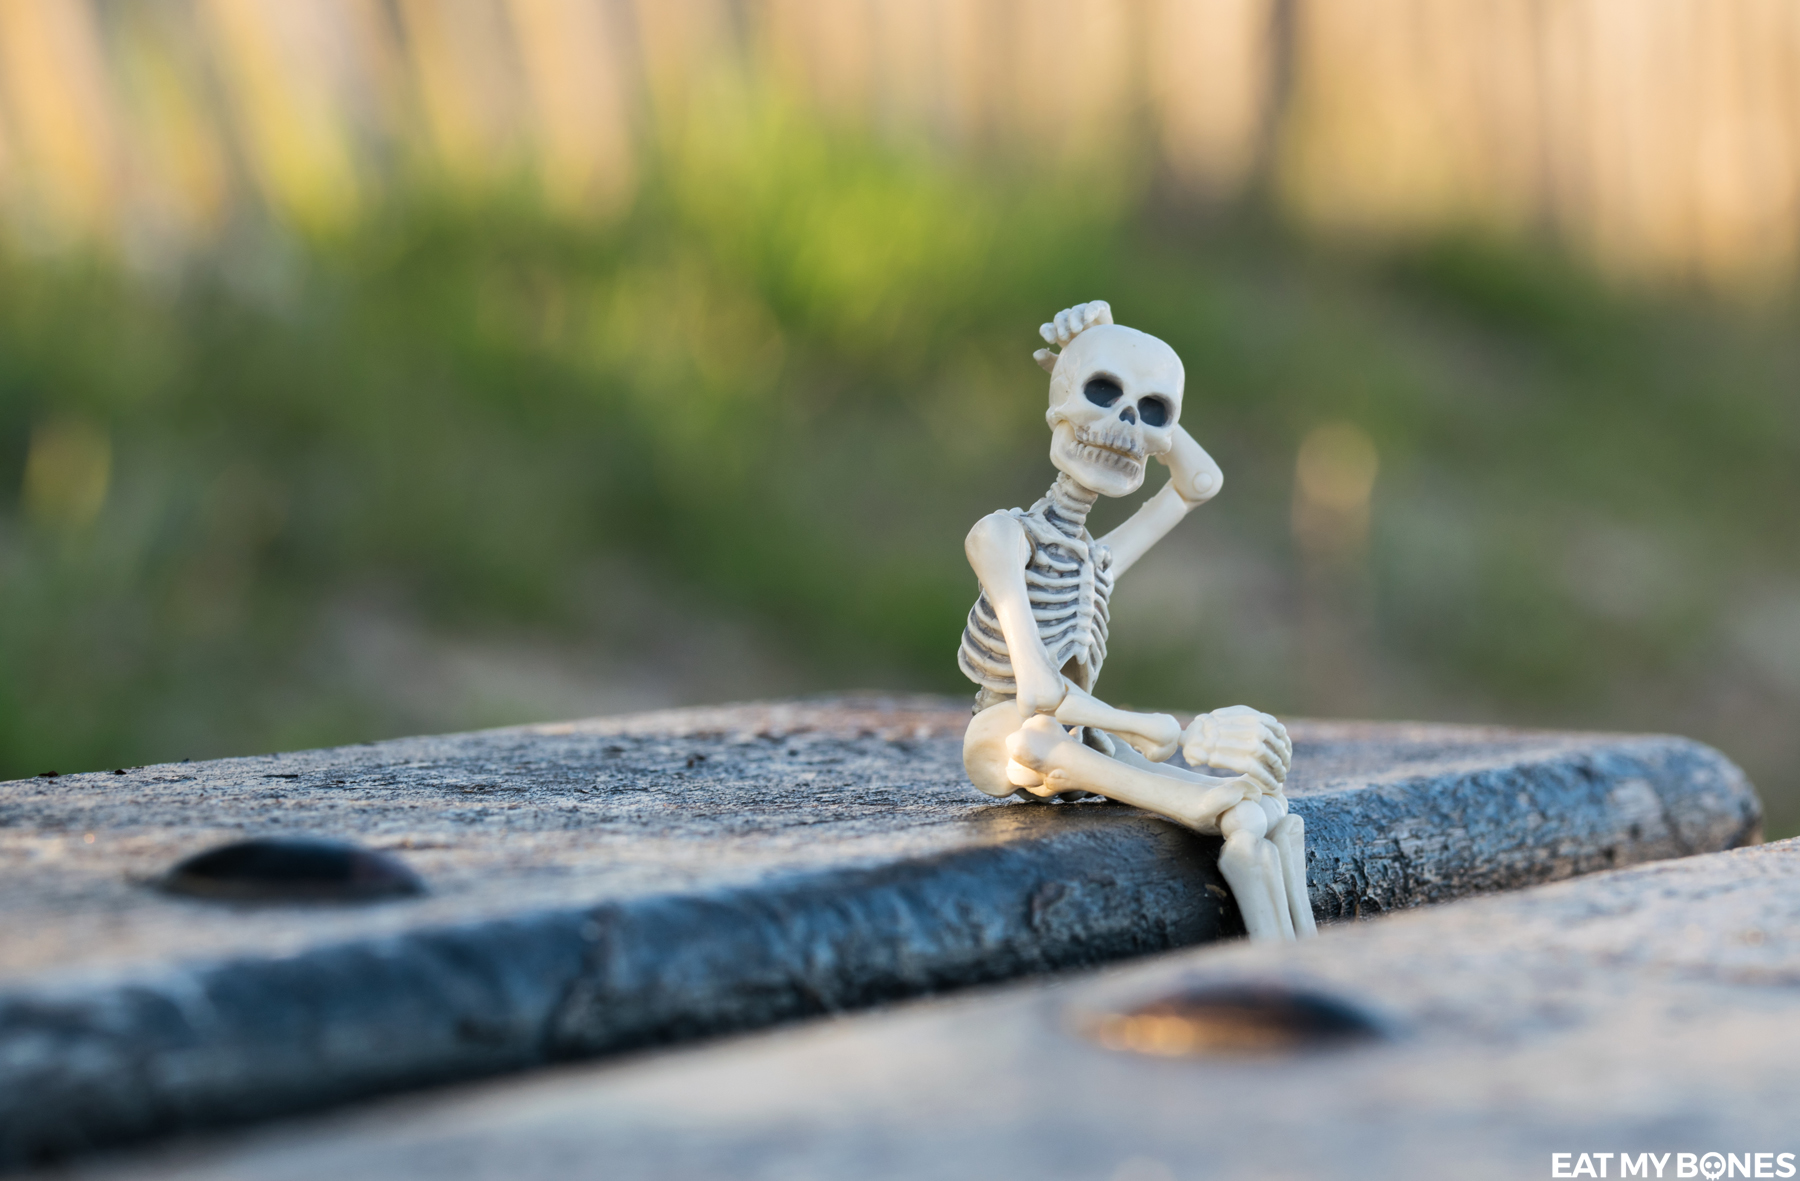 Bench - Pose Skeleton - Toy photography - Miniature - Eat my Bones